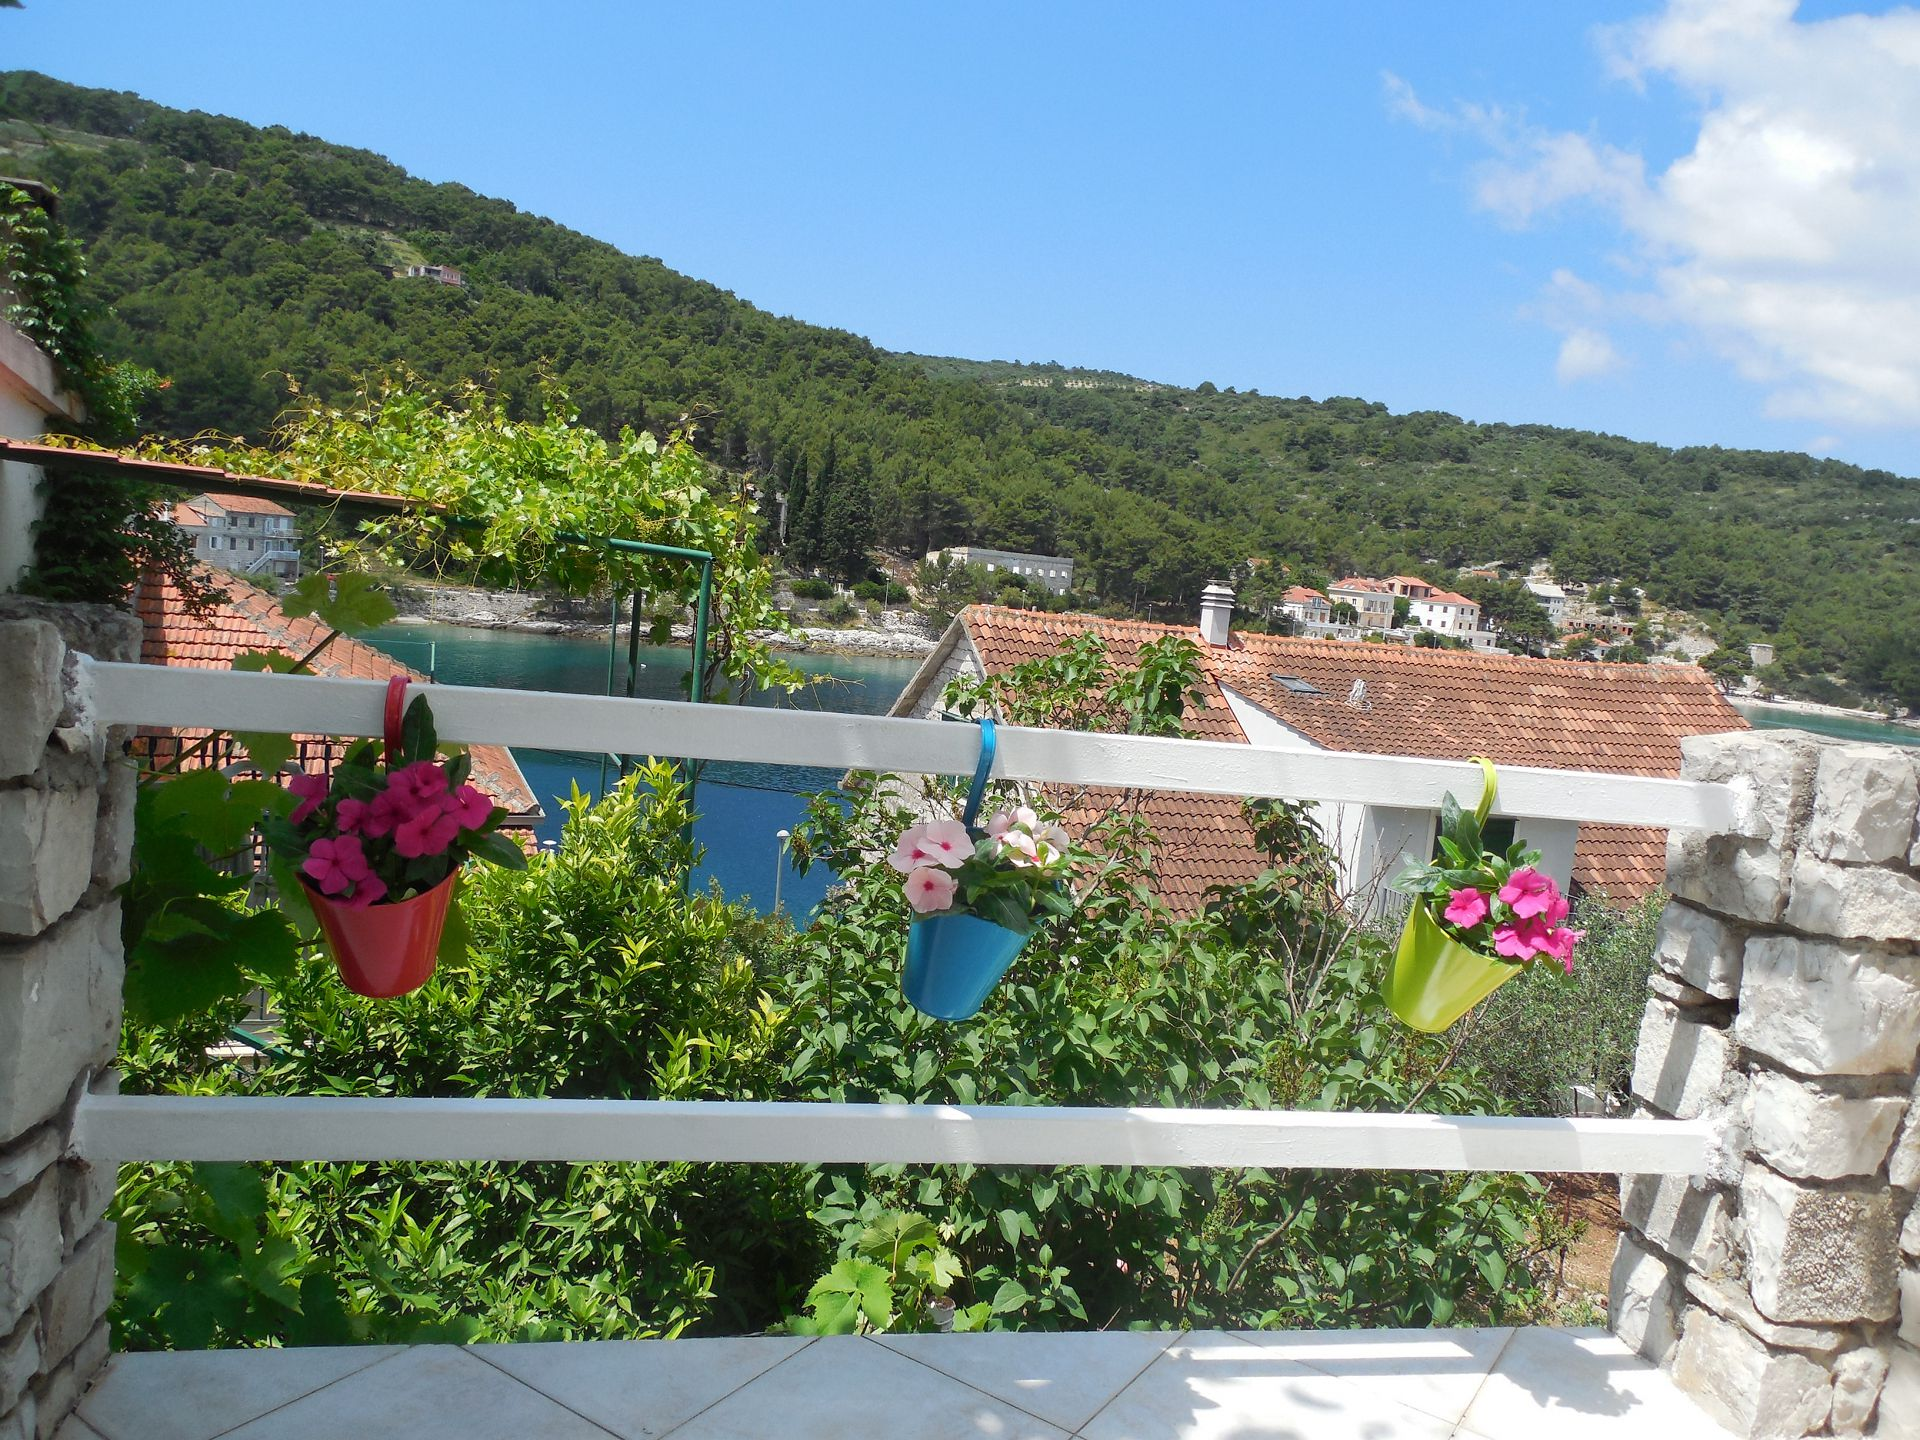 049-04-STO - Stomorska - Apartments Croatia